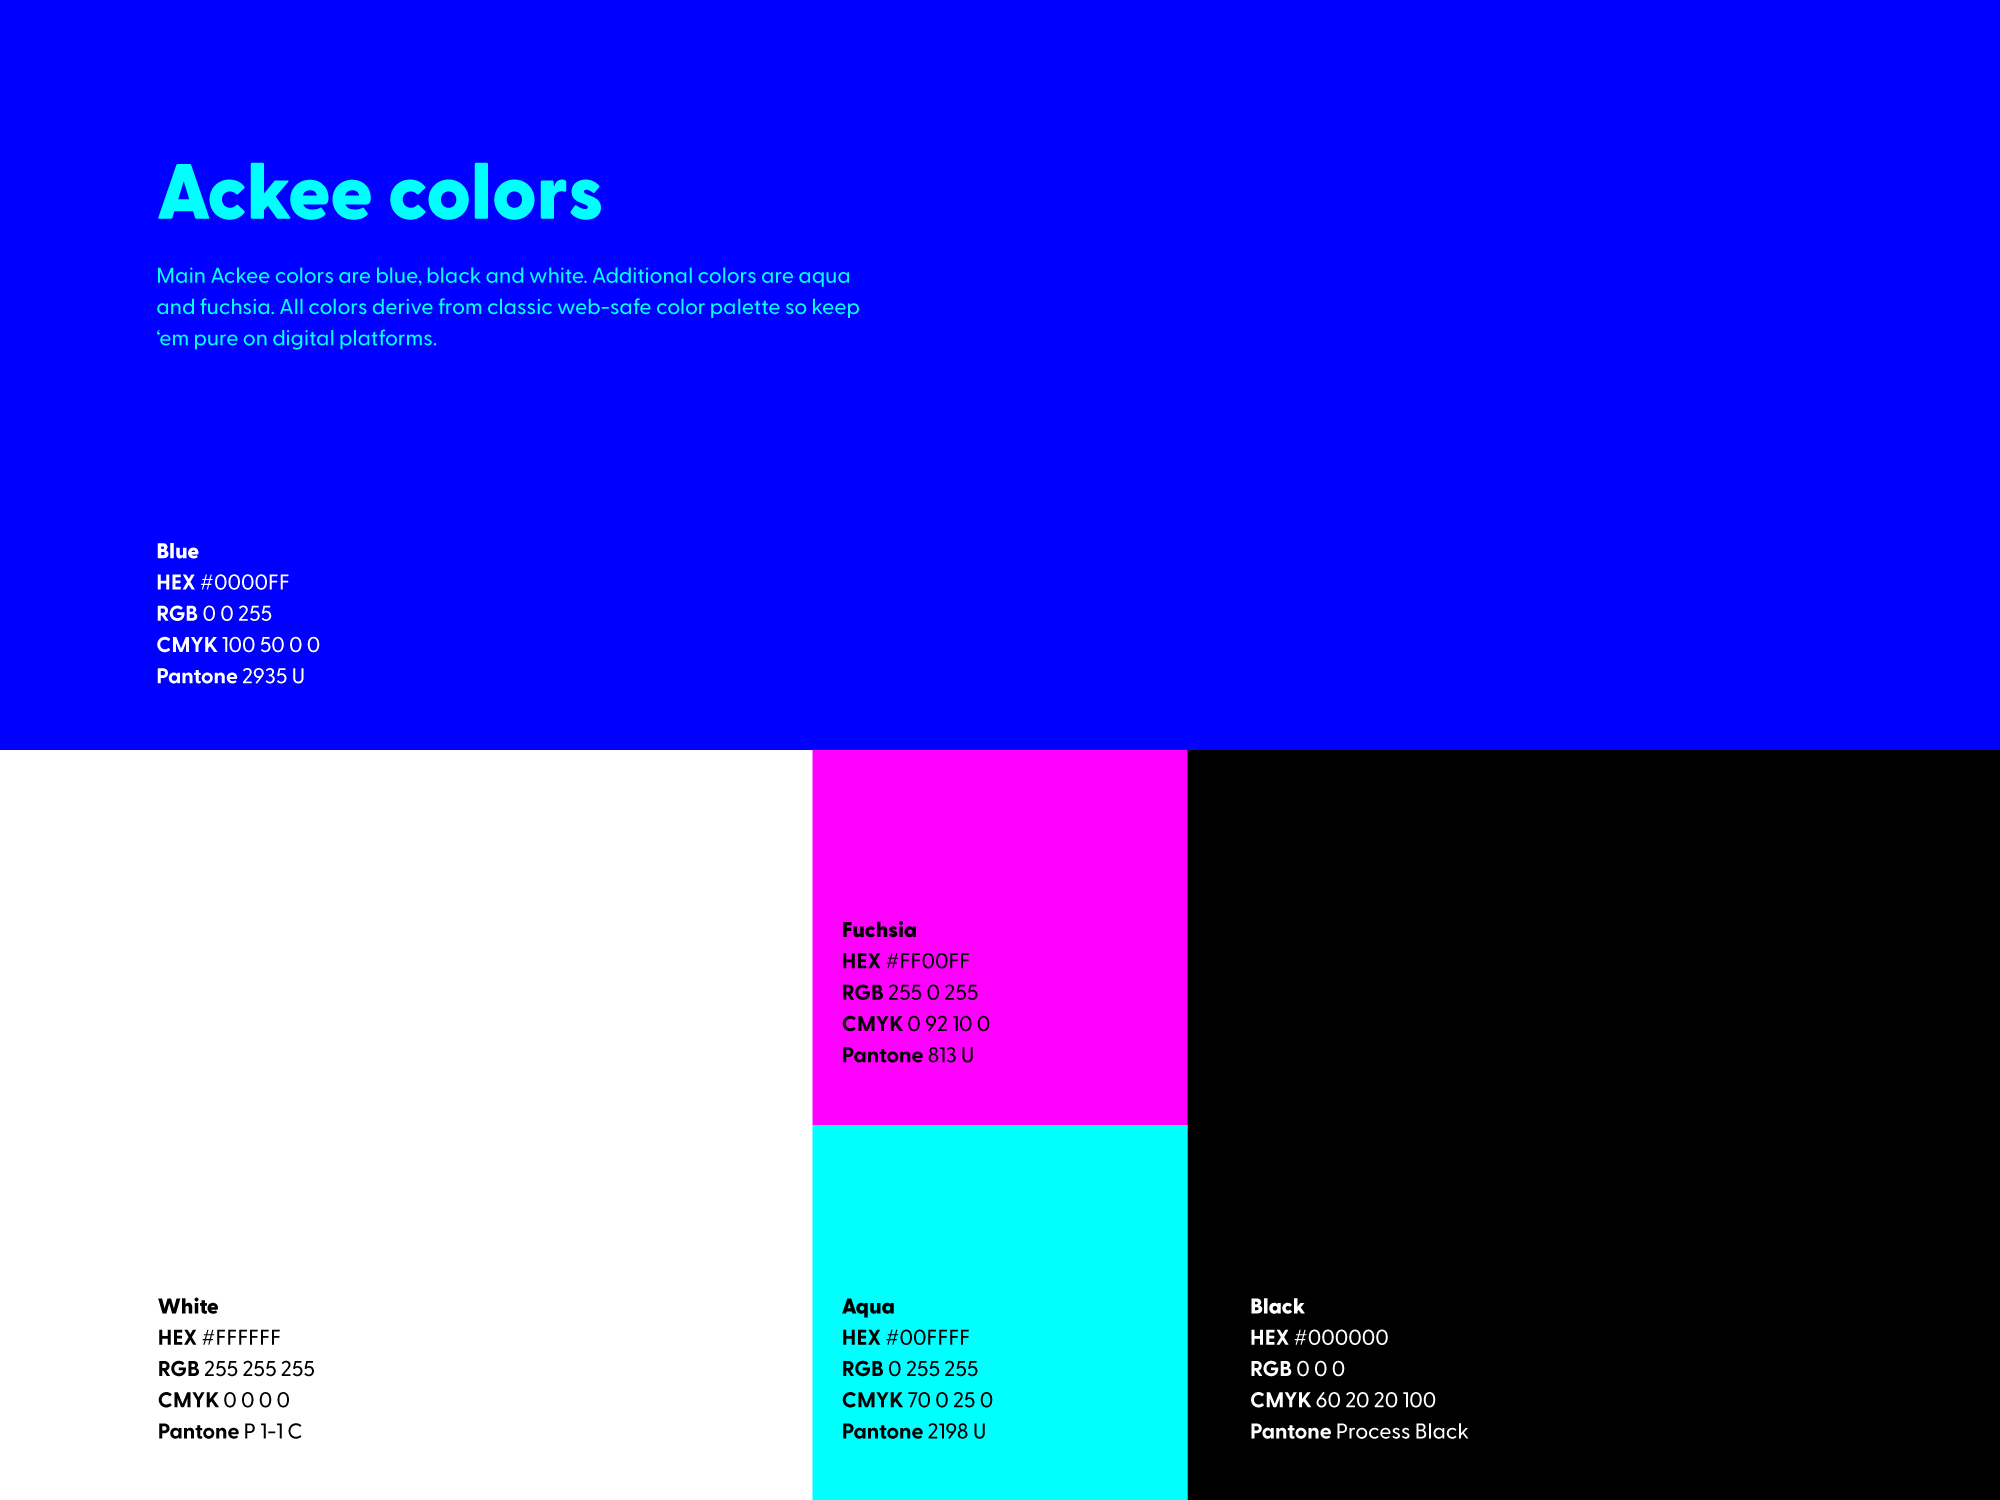 Ackee colors